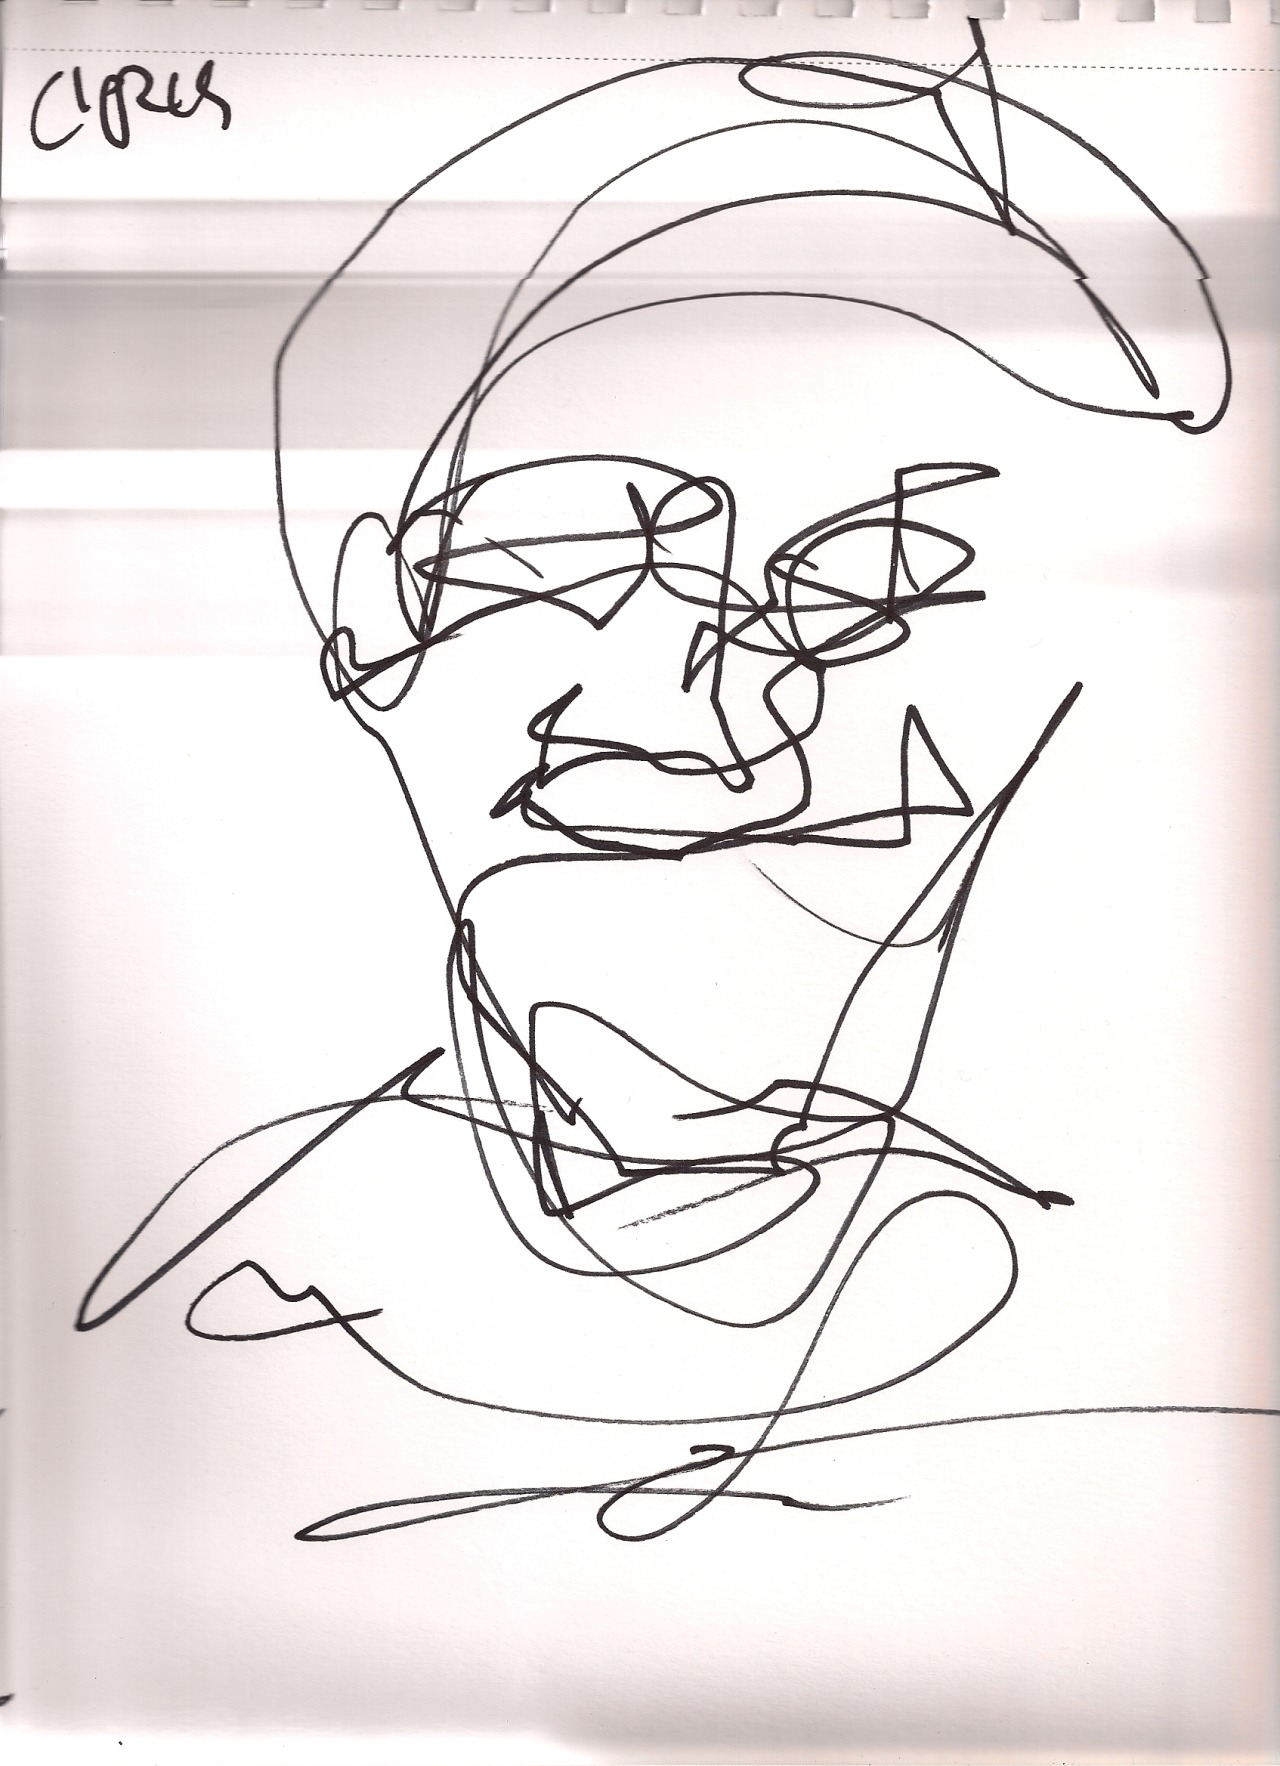 My friend, Steve, drew this blind contour portrait of Chris Intagliata as part of his talent performance at our 4th Annual holiday party in Dec 2012.